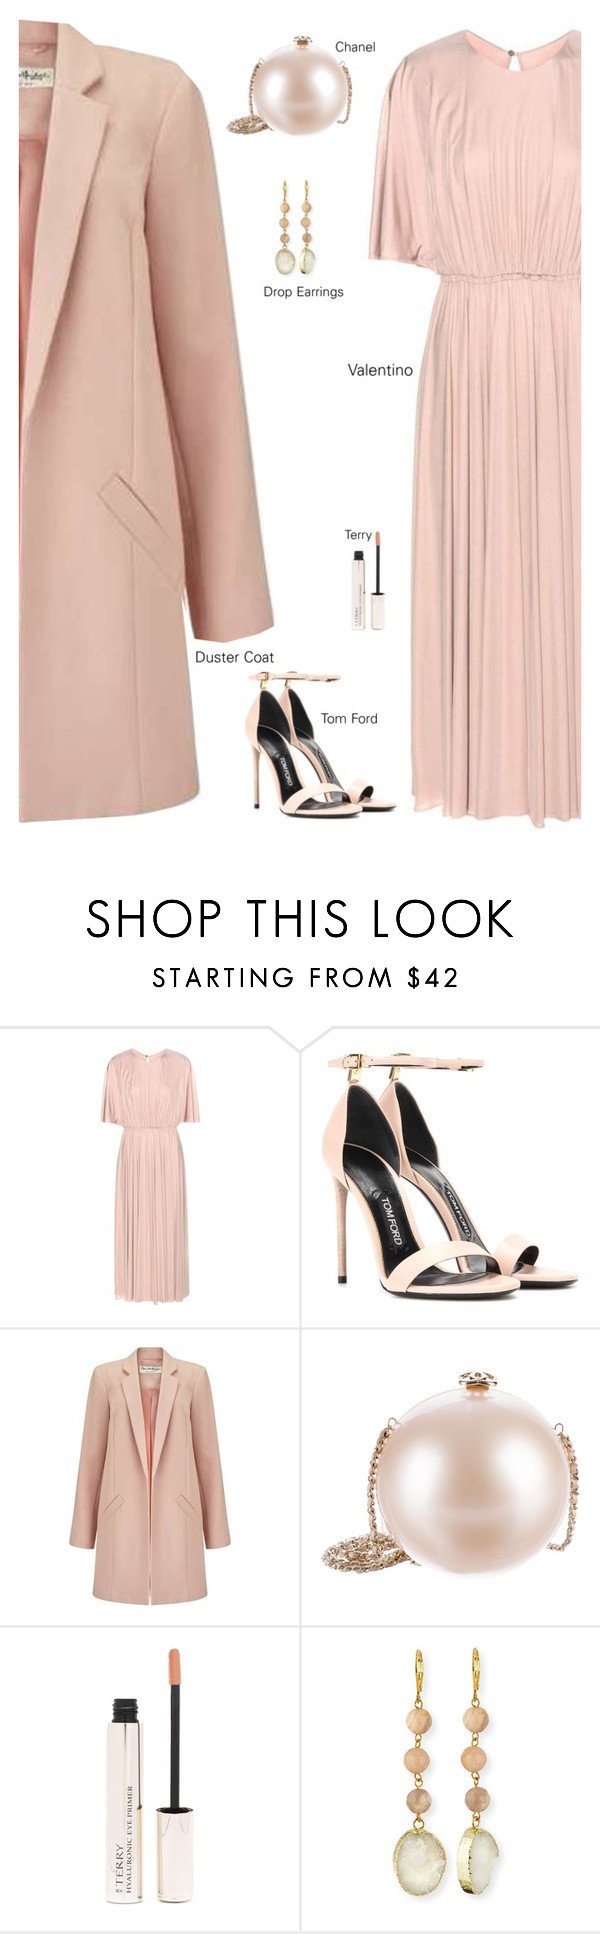 """""""Neutrals"""" by jan31 ❤ liked on Polyvore featuring Valentino, Tom Ford, Miss Selfridge, Chanel, By Terry, Panacea, neutrals, blush, embellished and DusterCoats"""